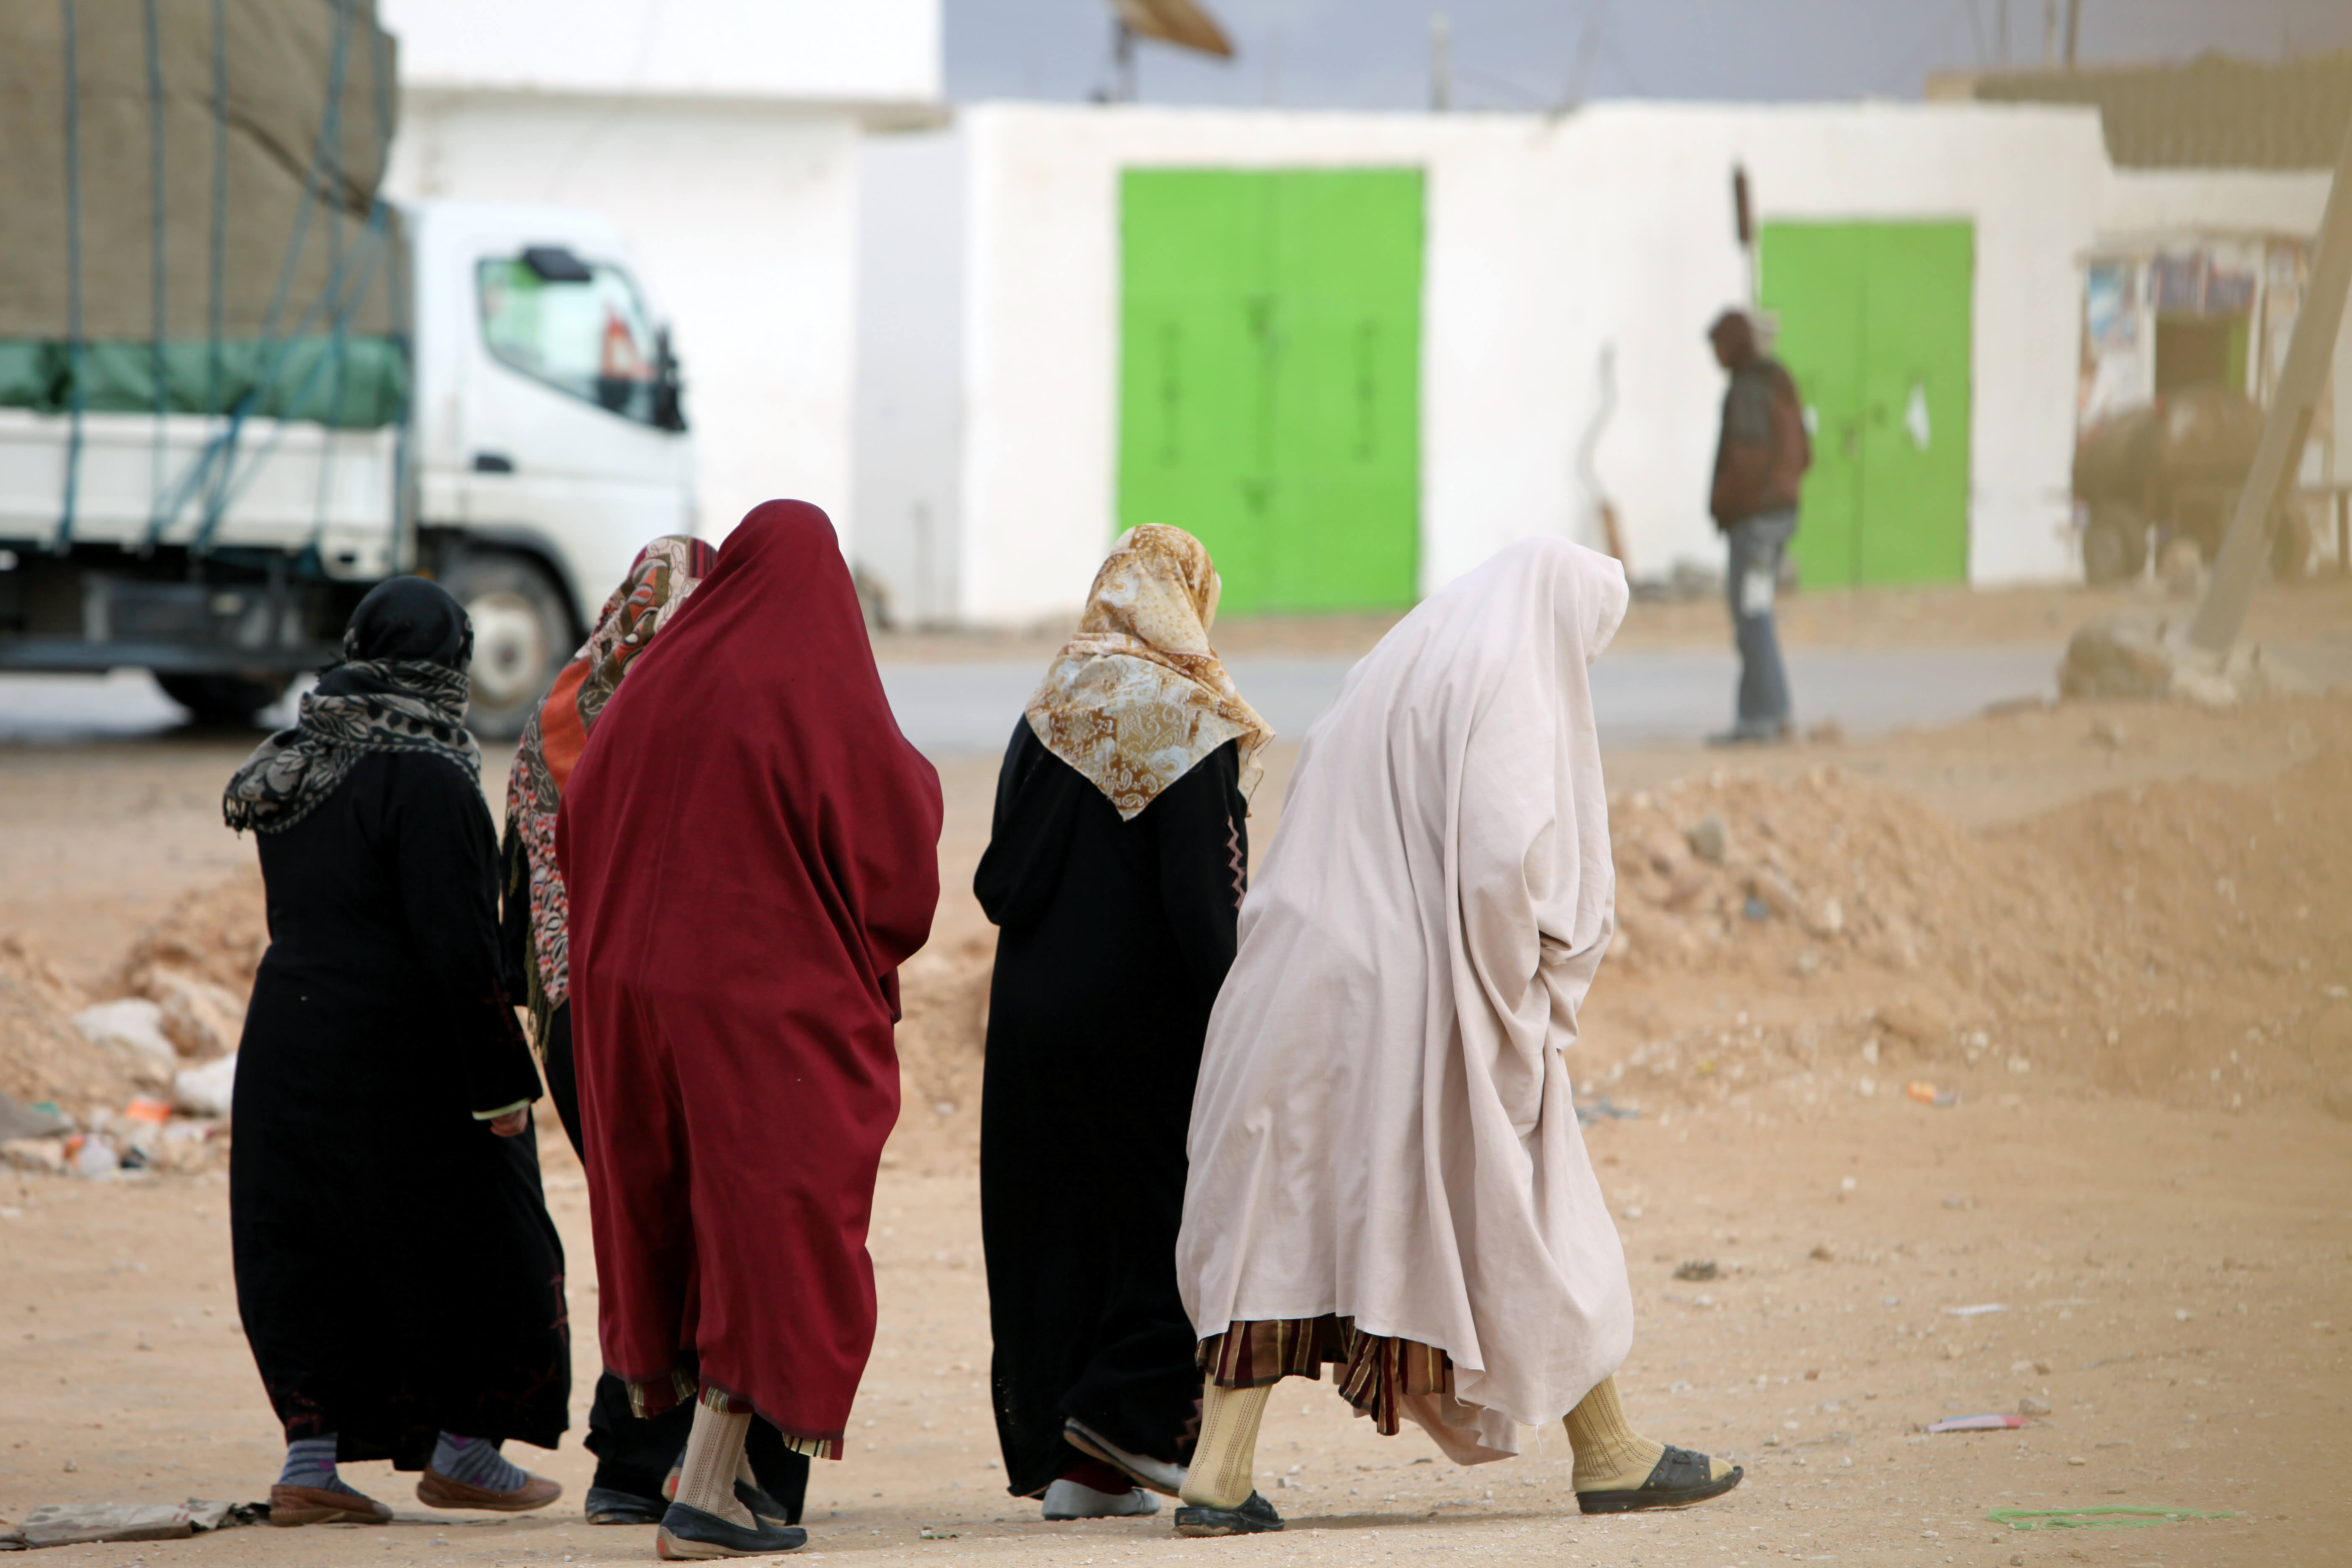 Between Conservatism and Pragmatism: Crafting a Human Rights-Based Approach to HIV/AIDS Related Services for Women in the Middle East